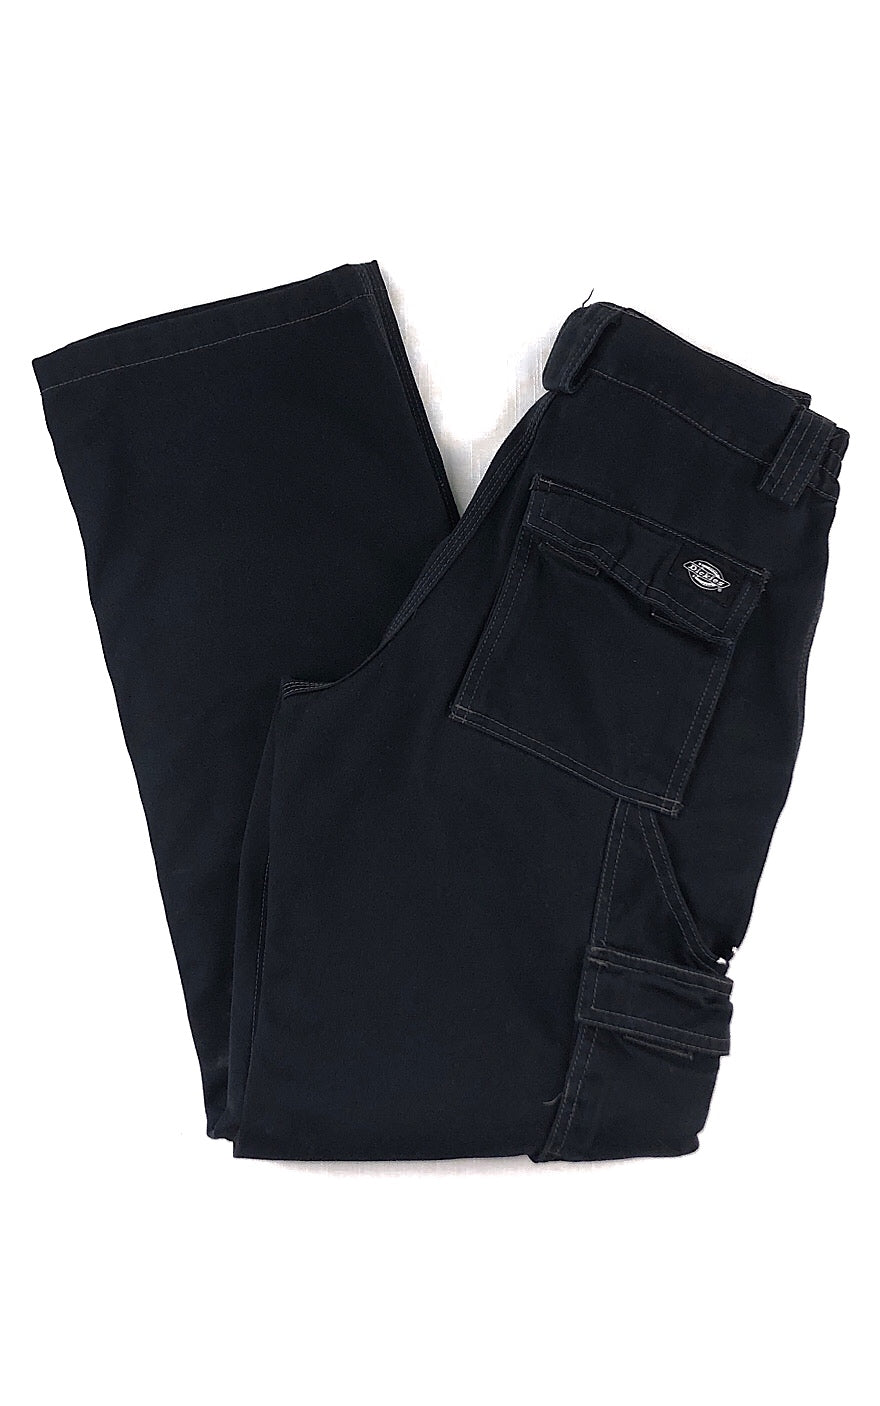 Black DICKIES Work Pants